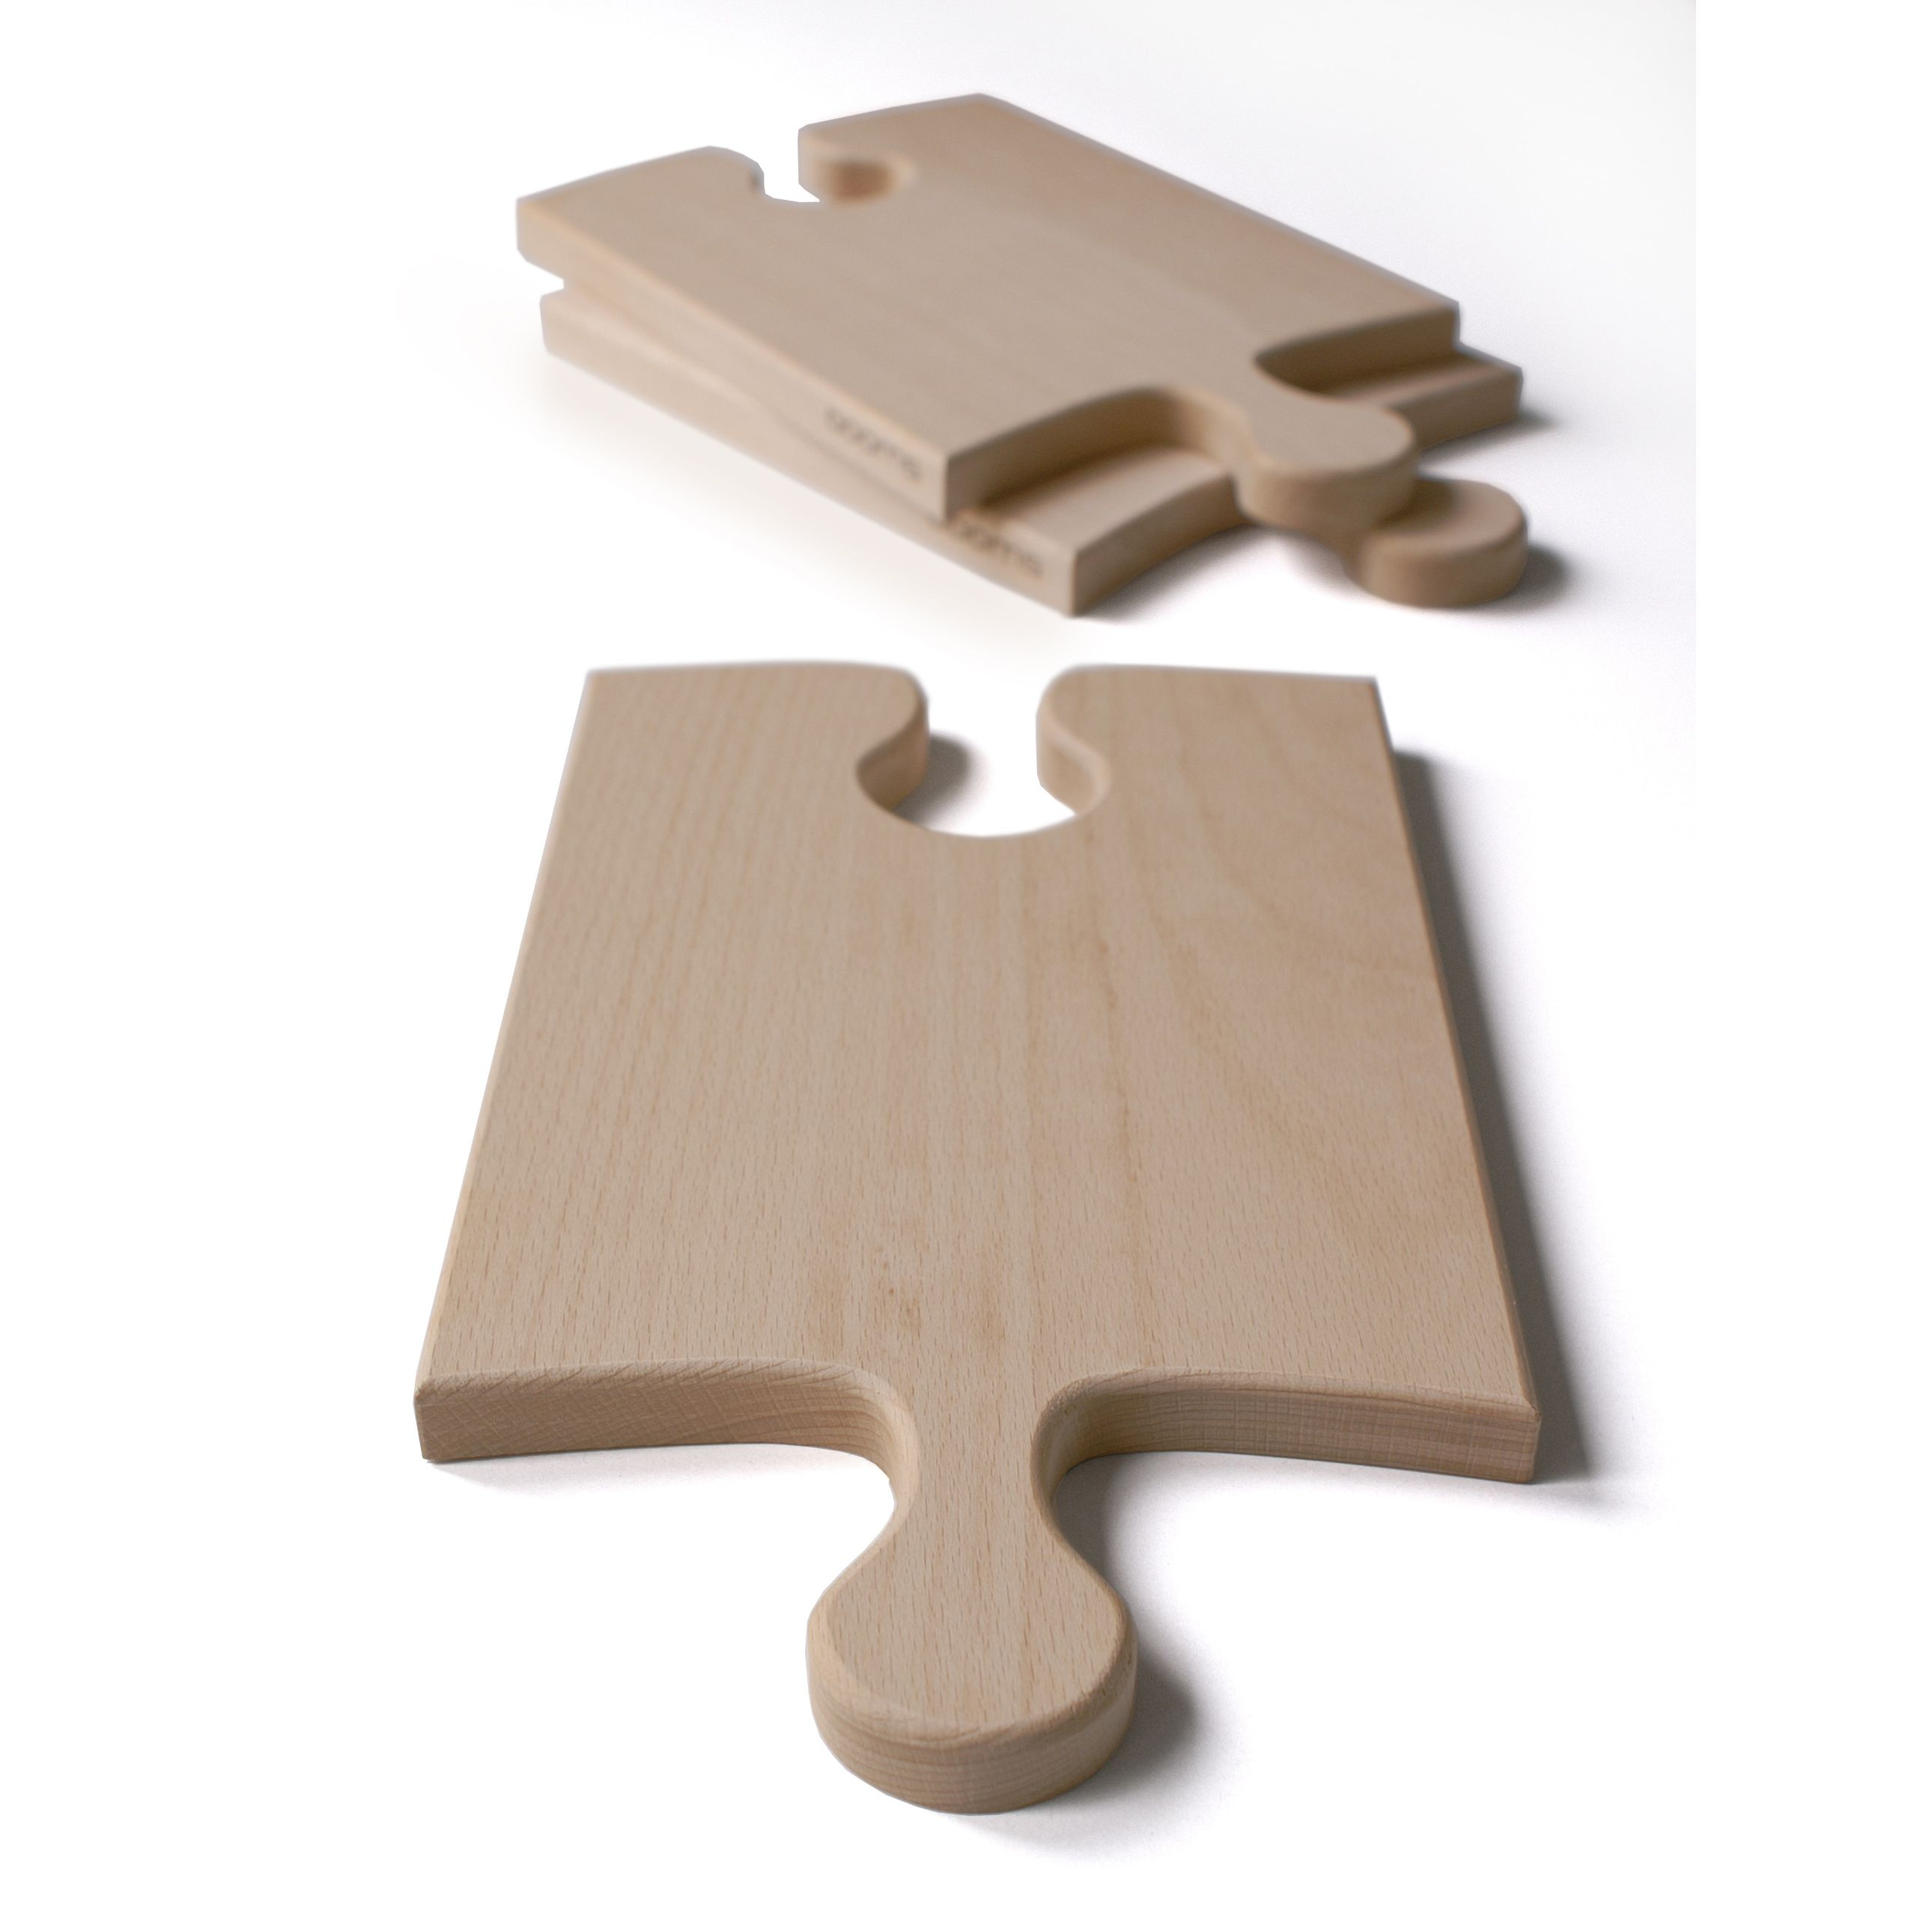 OOOMS   Puzzle Cutting Board Double As Extendable Cutting Board And  Appetizer Plate With Wine Glass